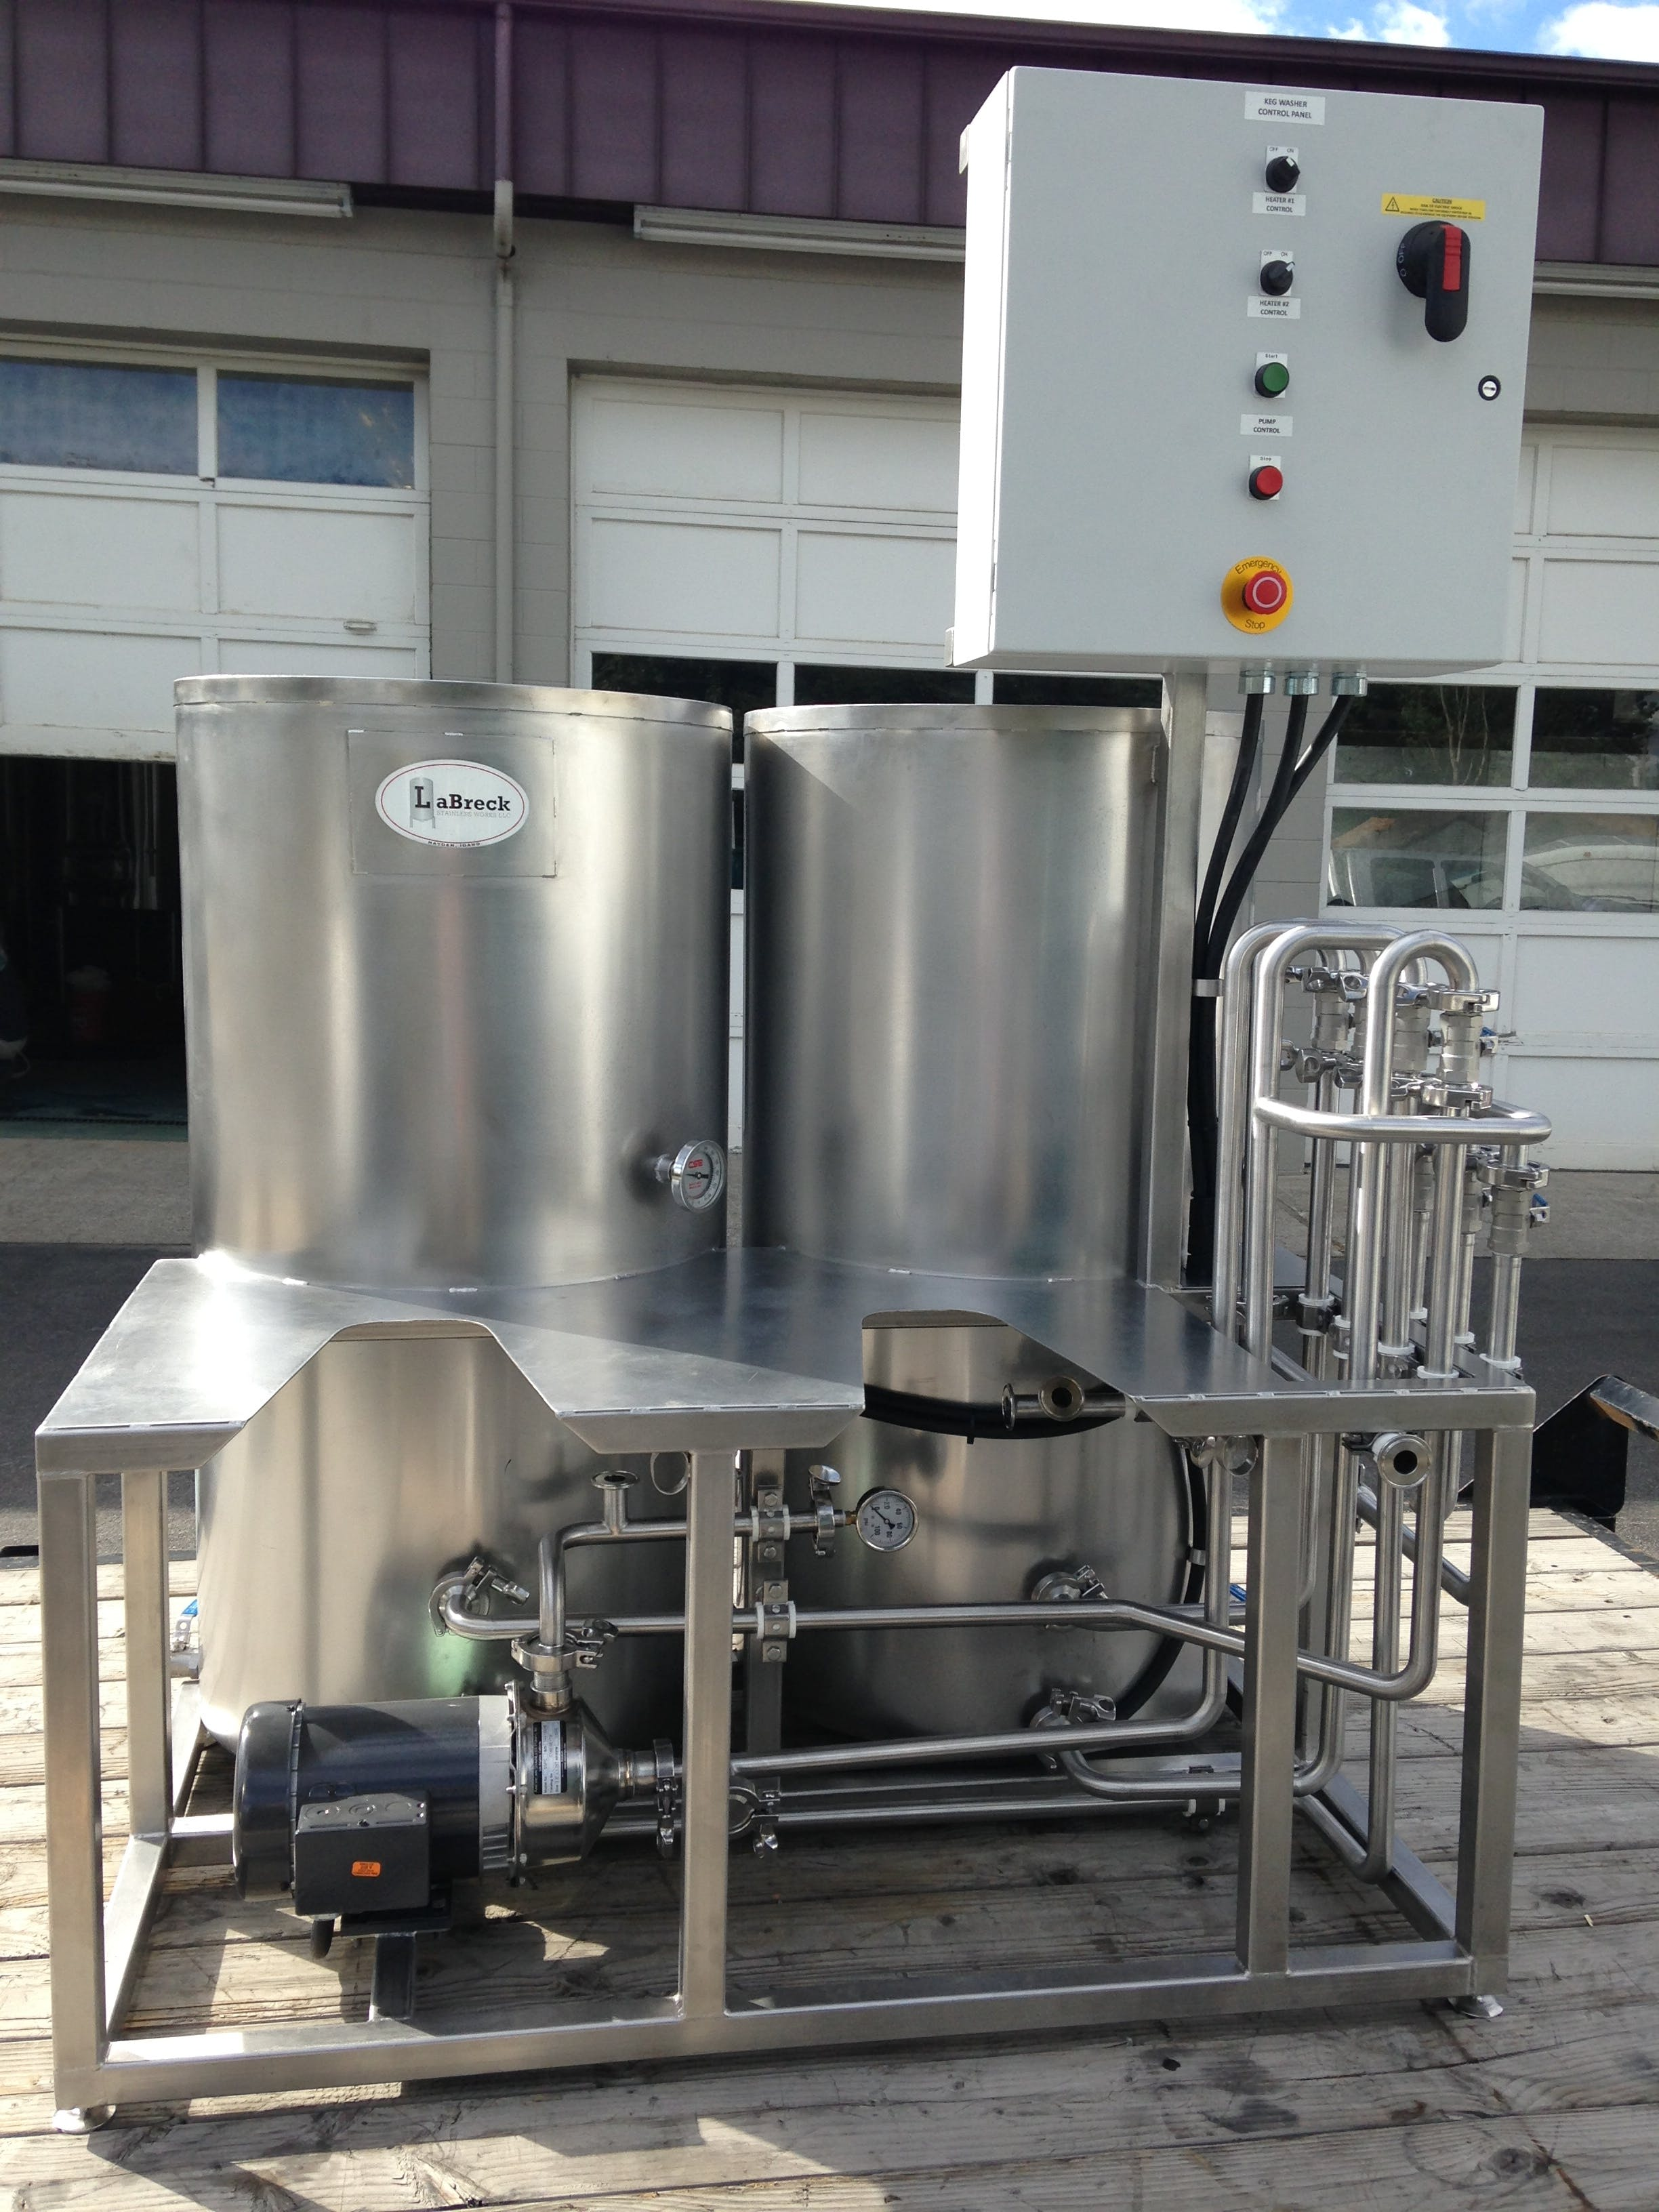 Domestic 2 head keg washer Keg washer sold by LaBreck Stainless Works